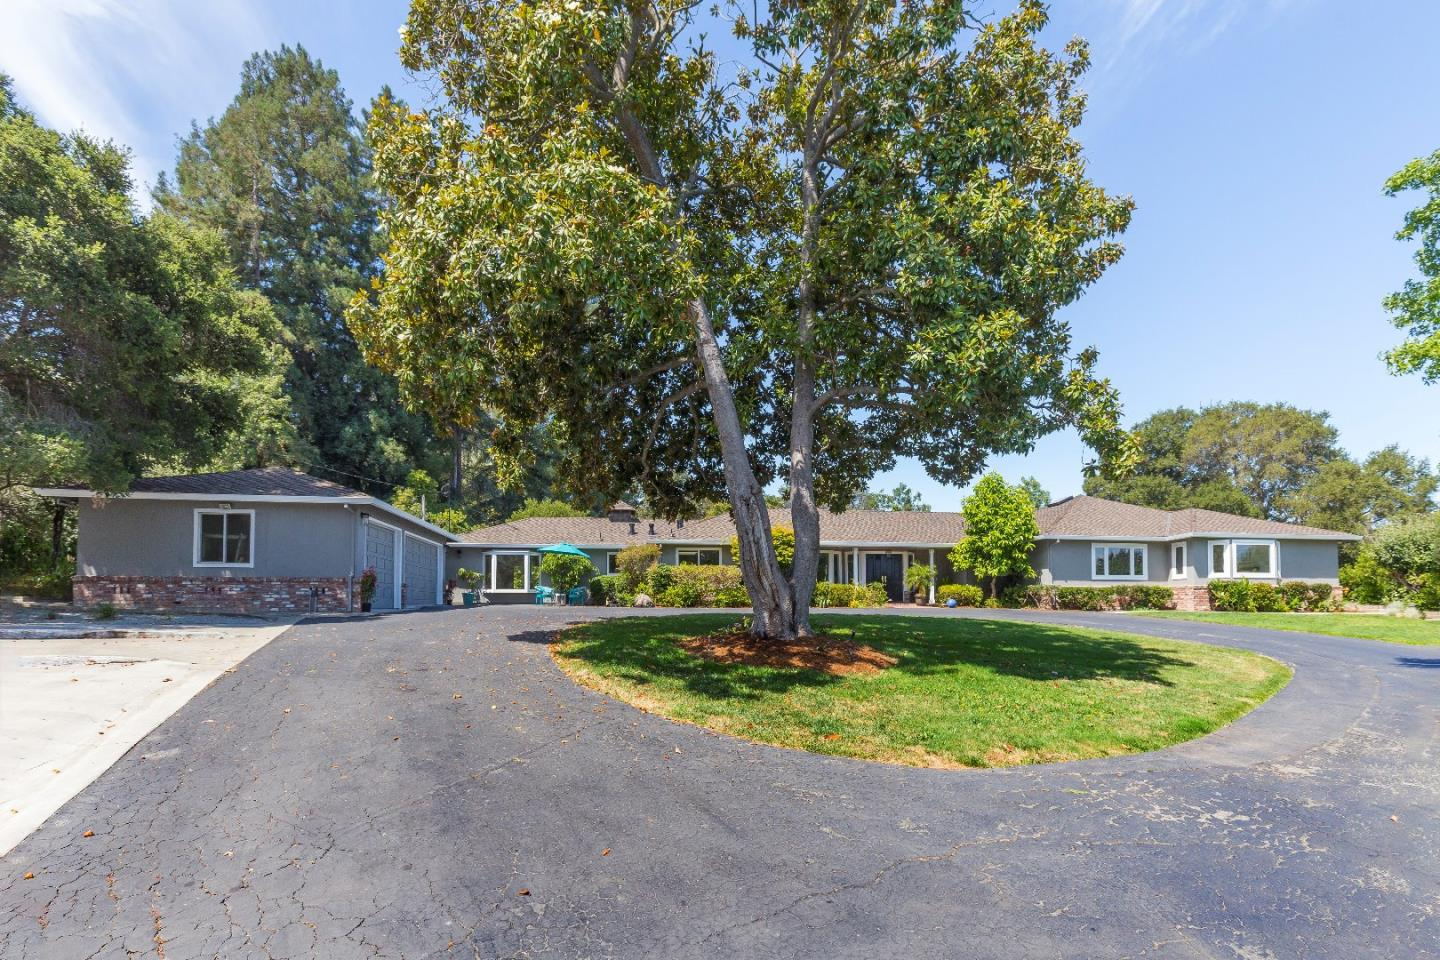 Single Family Home for Sale at 2190 Ward Way Woodside, California 94062 United States